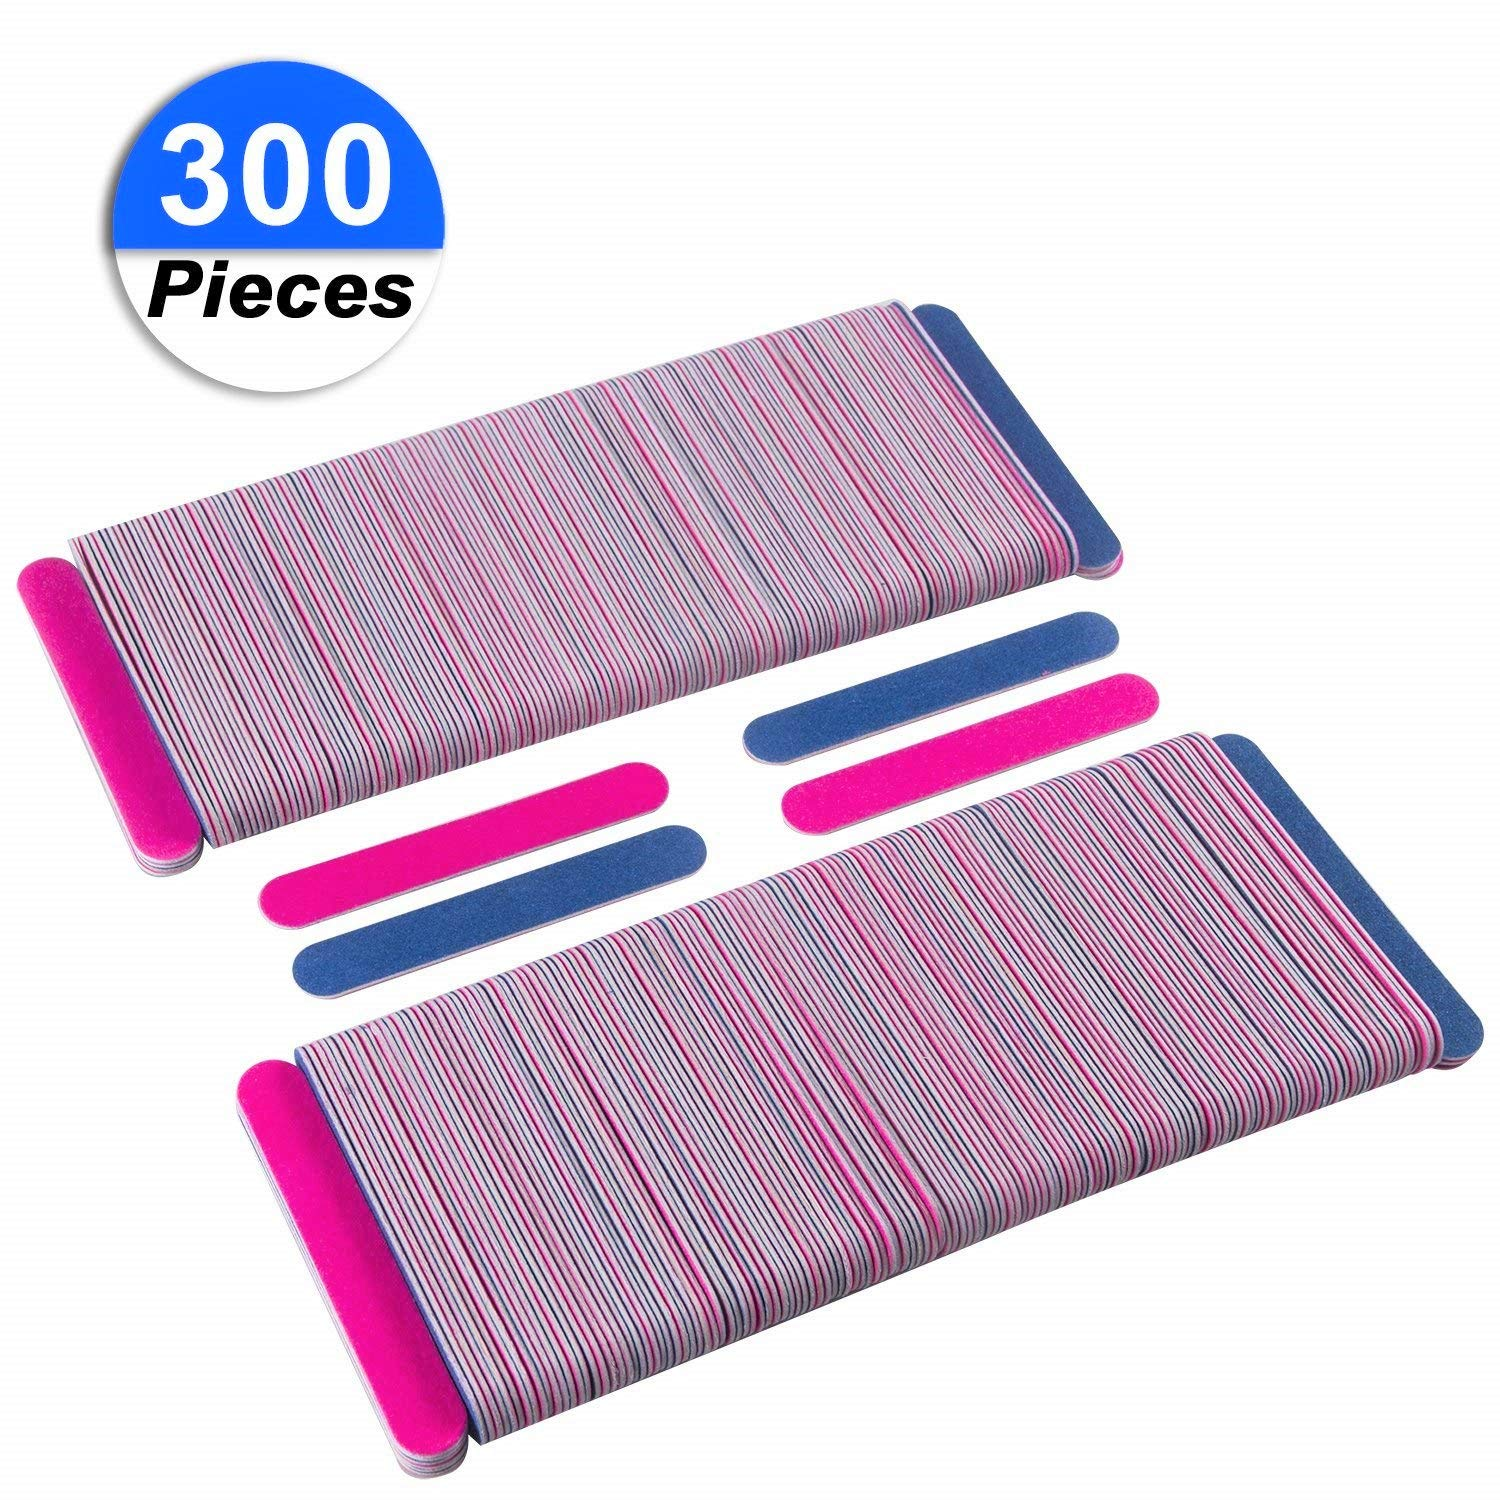 300 Pack Disposable Nail Files Double Sided Emery Boards Manicure Pedicure Tools - Home or Professional Boards Manicure Tools by waloden by Waloden